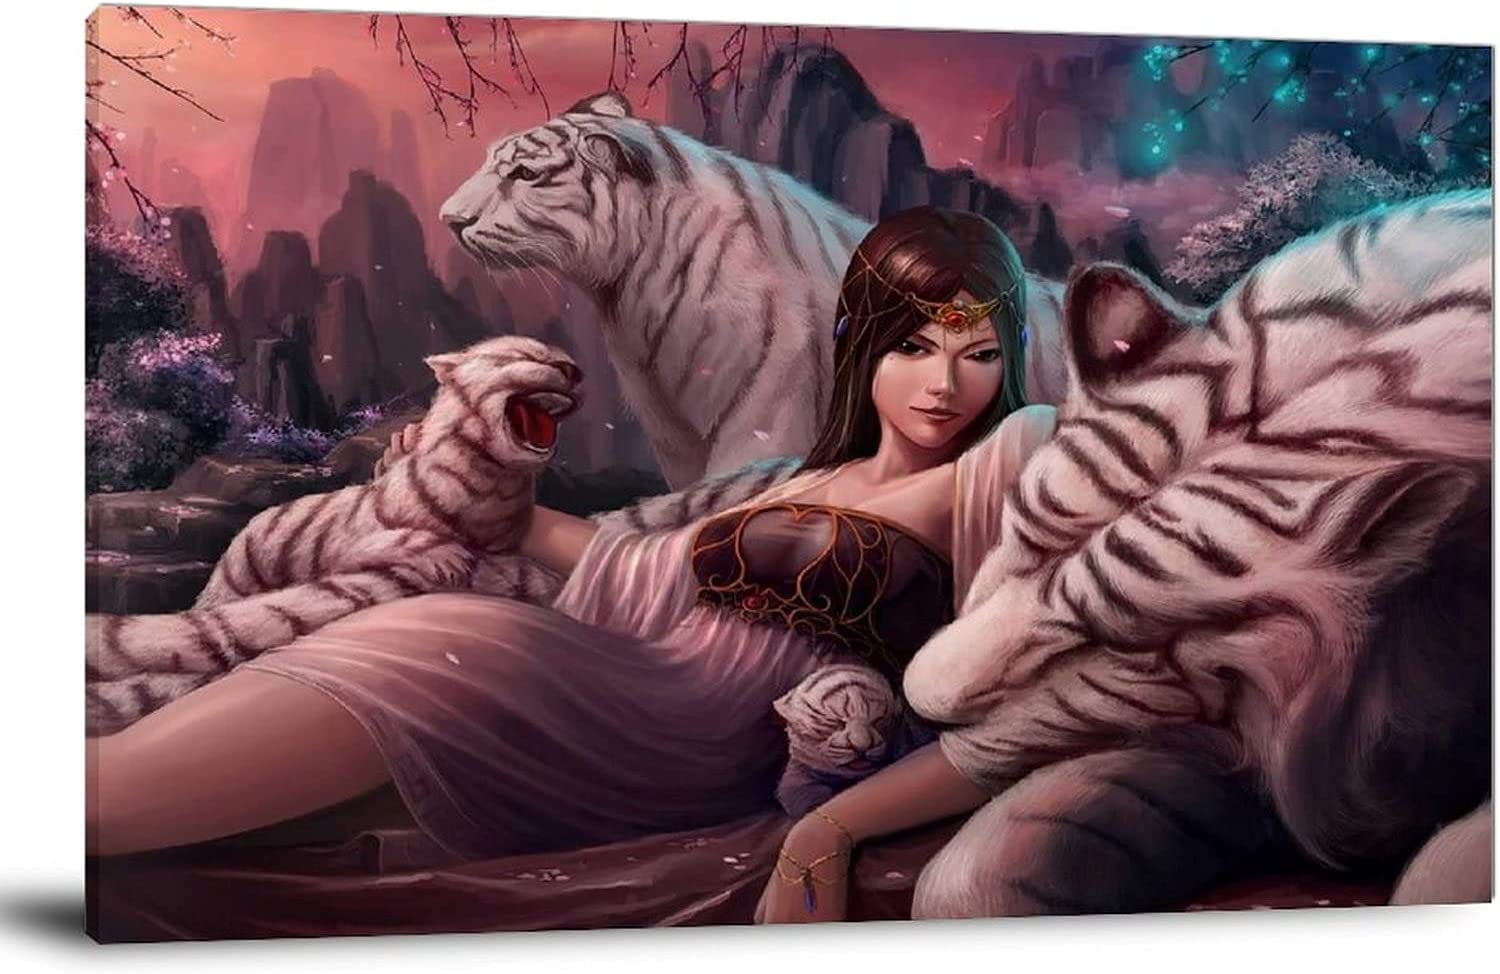 ypf Woman and White Tiger Cub Art Wall Poster Can Surprise price Painting Bargain Print